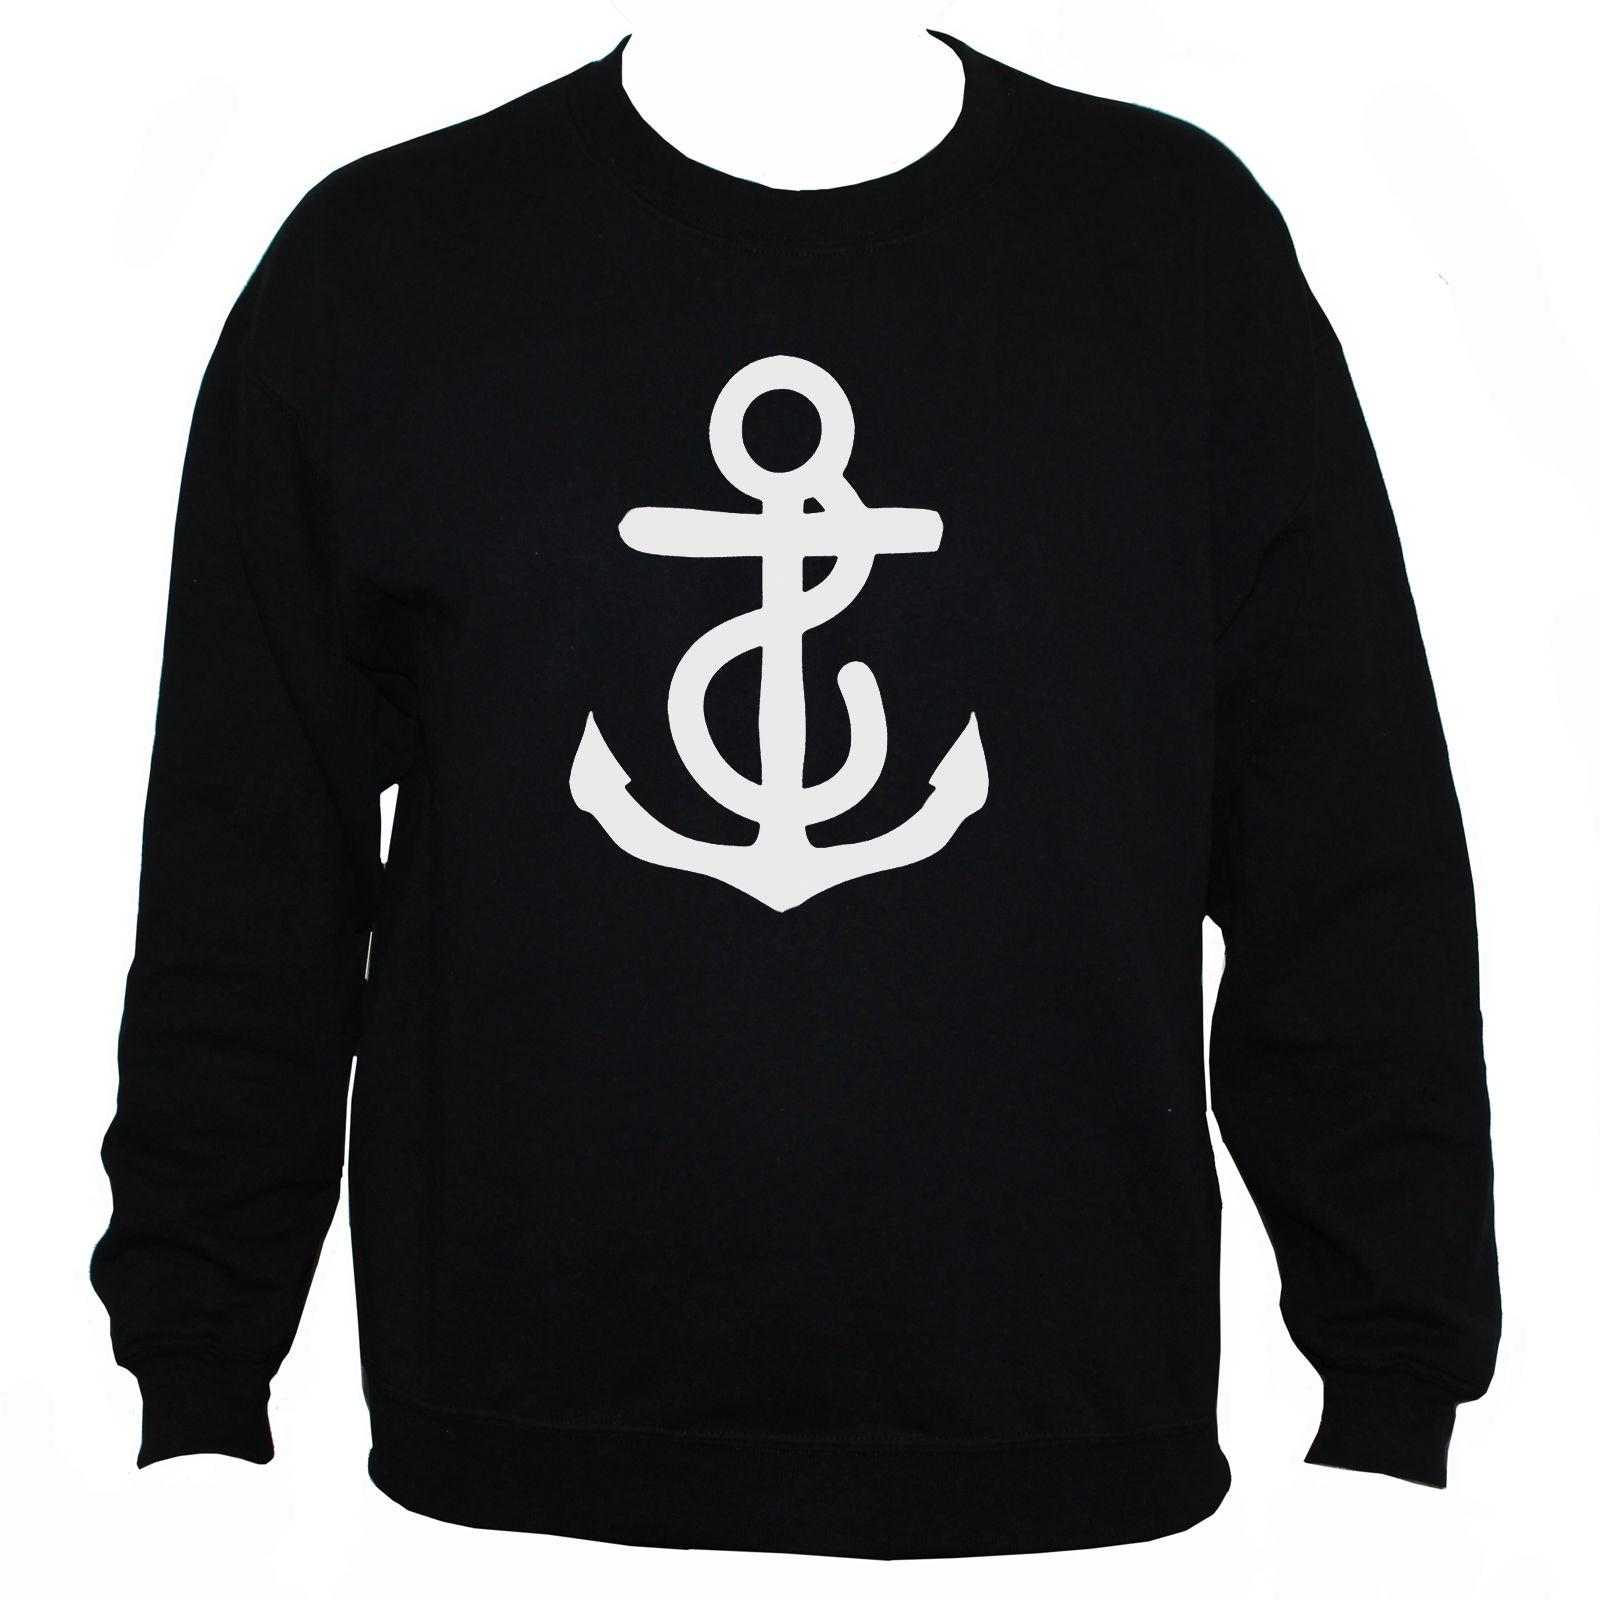 dfb4357bb ANCHOR SWEATSHIRT Nautical Holiday Graphic Printed Jumper Unisex Black/Grey T  Shirt Deals Humor Shirts From Banwanyue8, $15.73| DHgate.Com